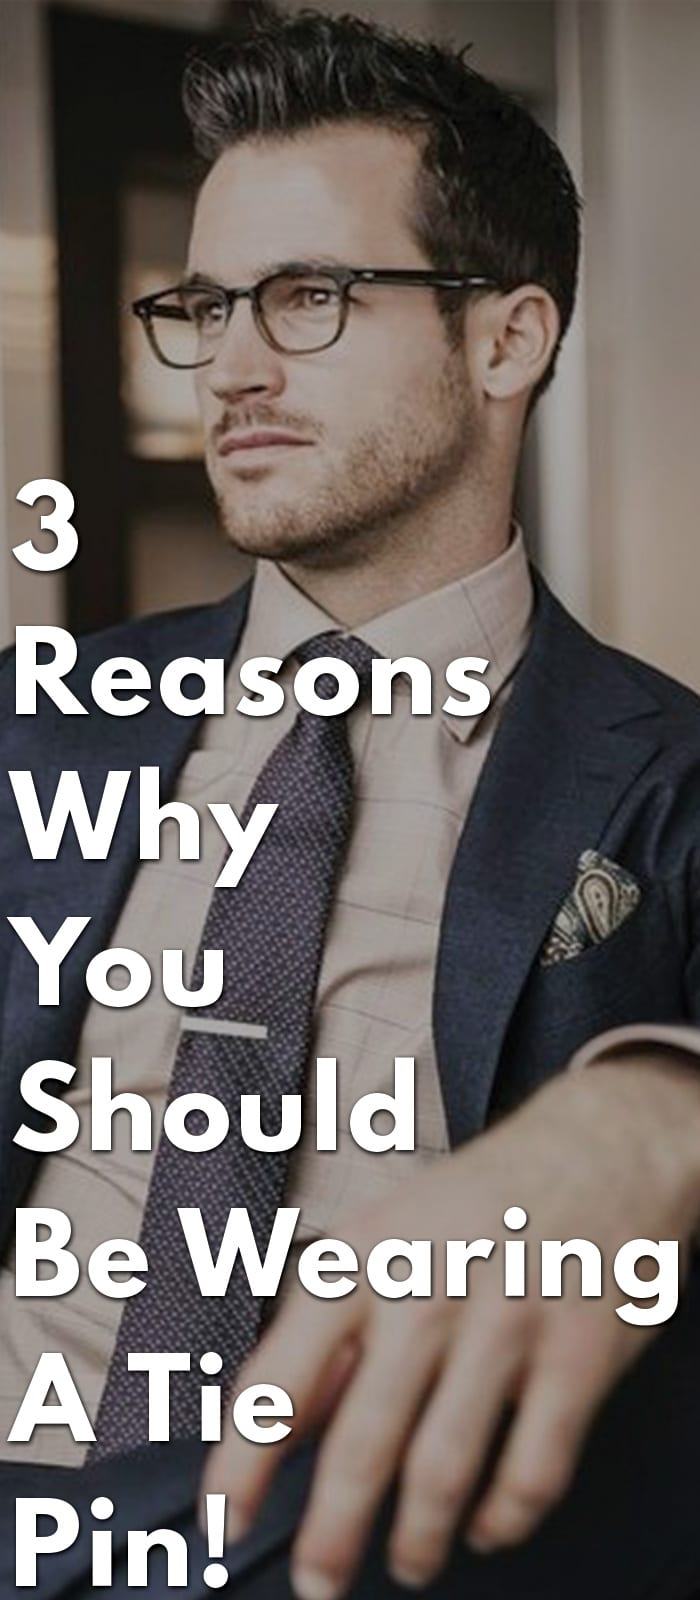 3-Reasons-Why-You-Should-Be-Wearing-A-Tie-Pin!